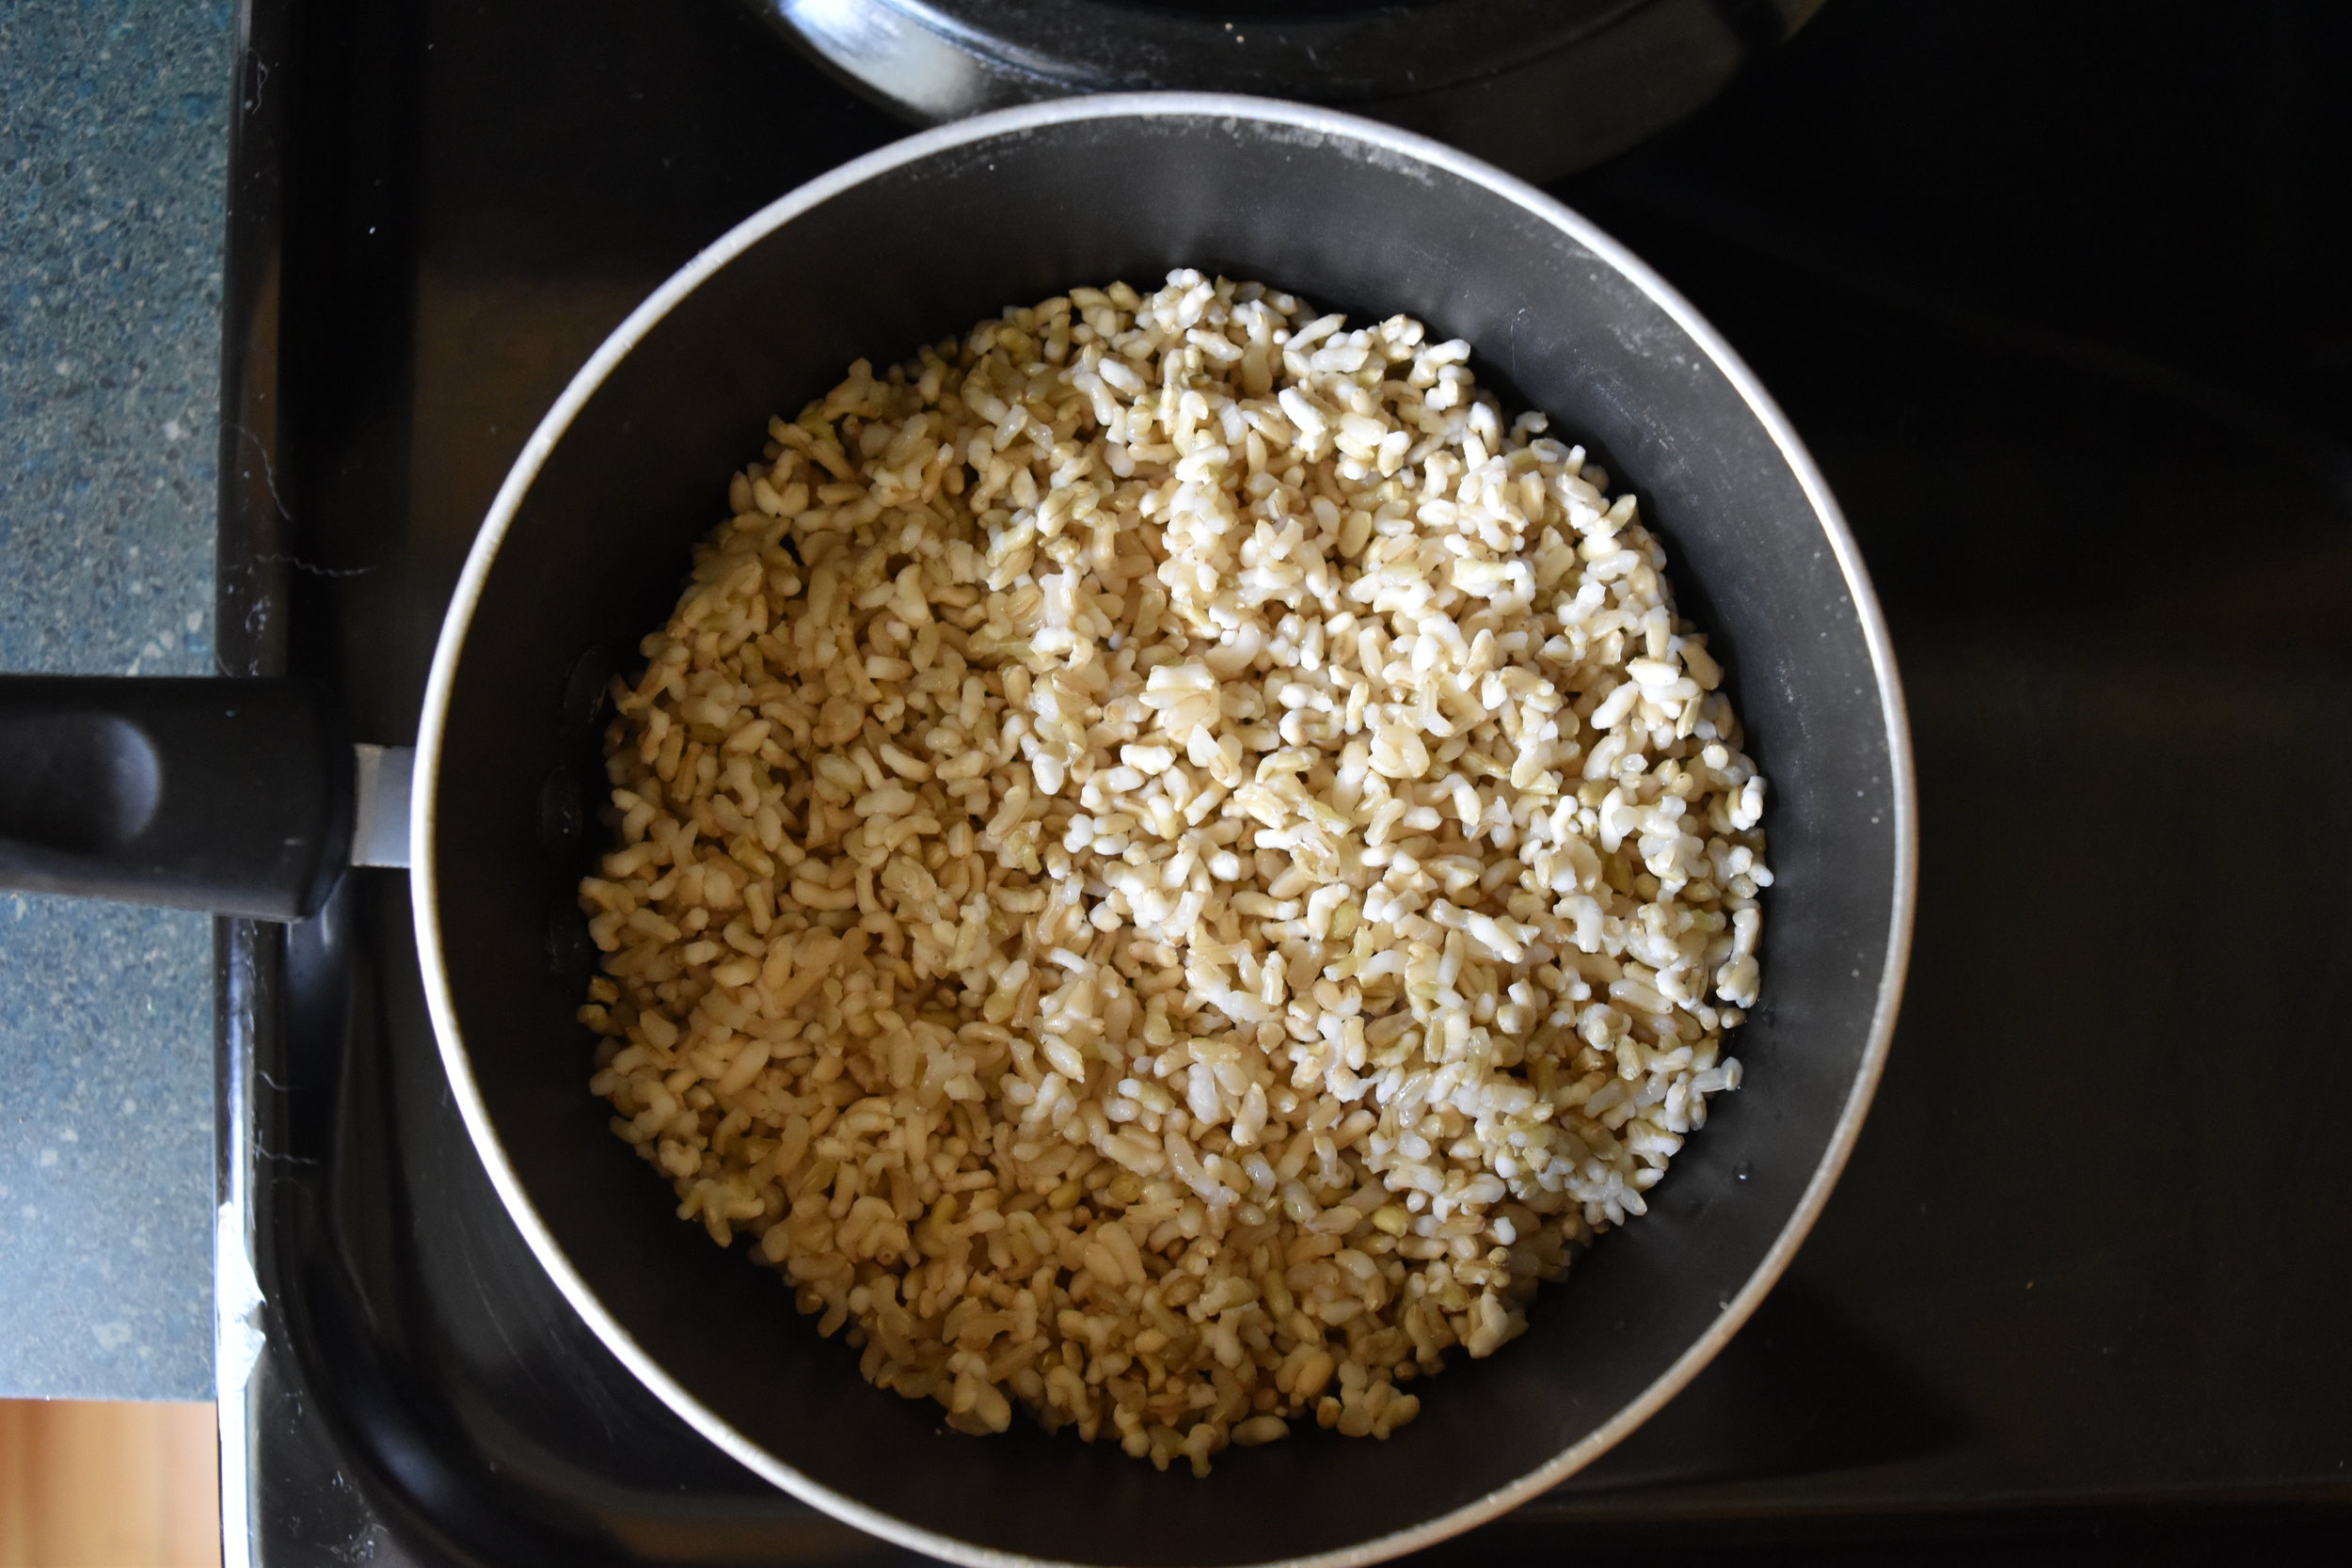 Frozen, cooked rice is such a time-saver and tastes so delicious.